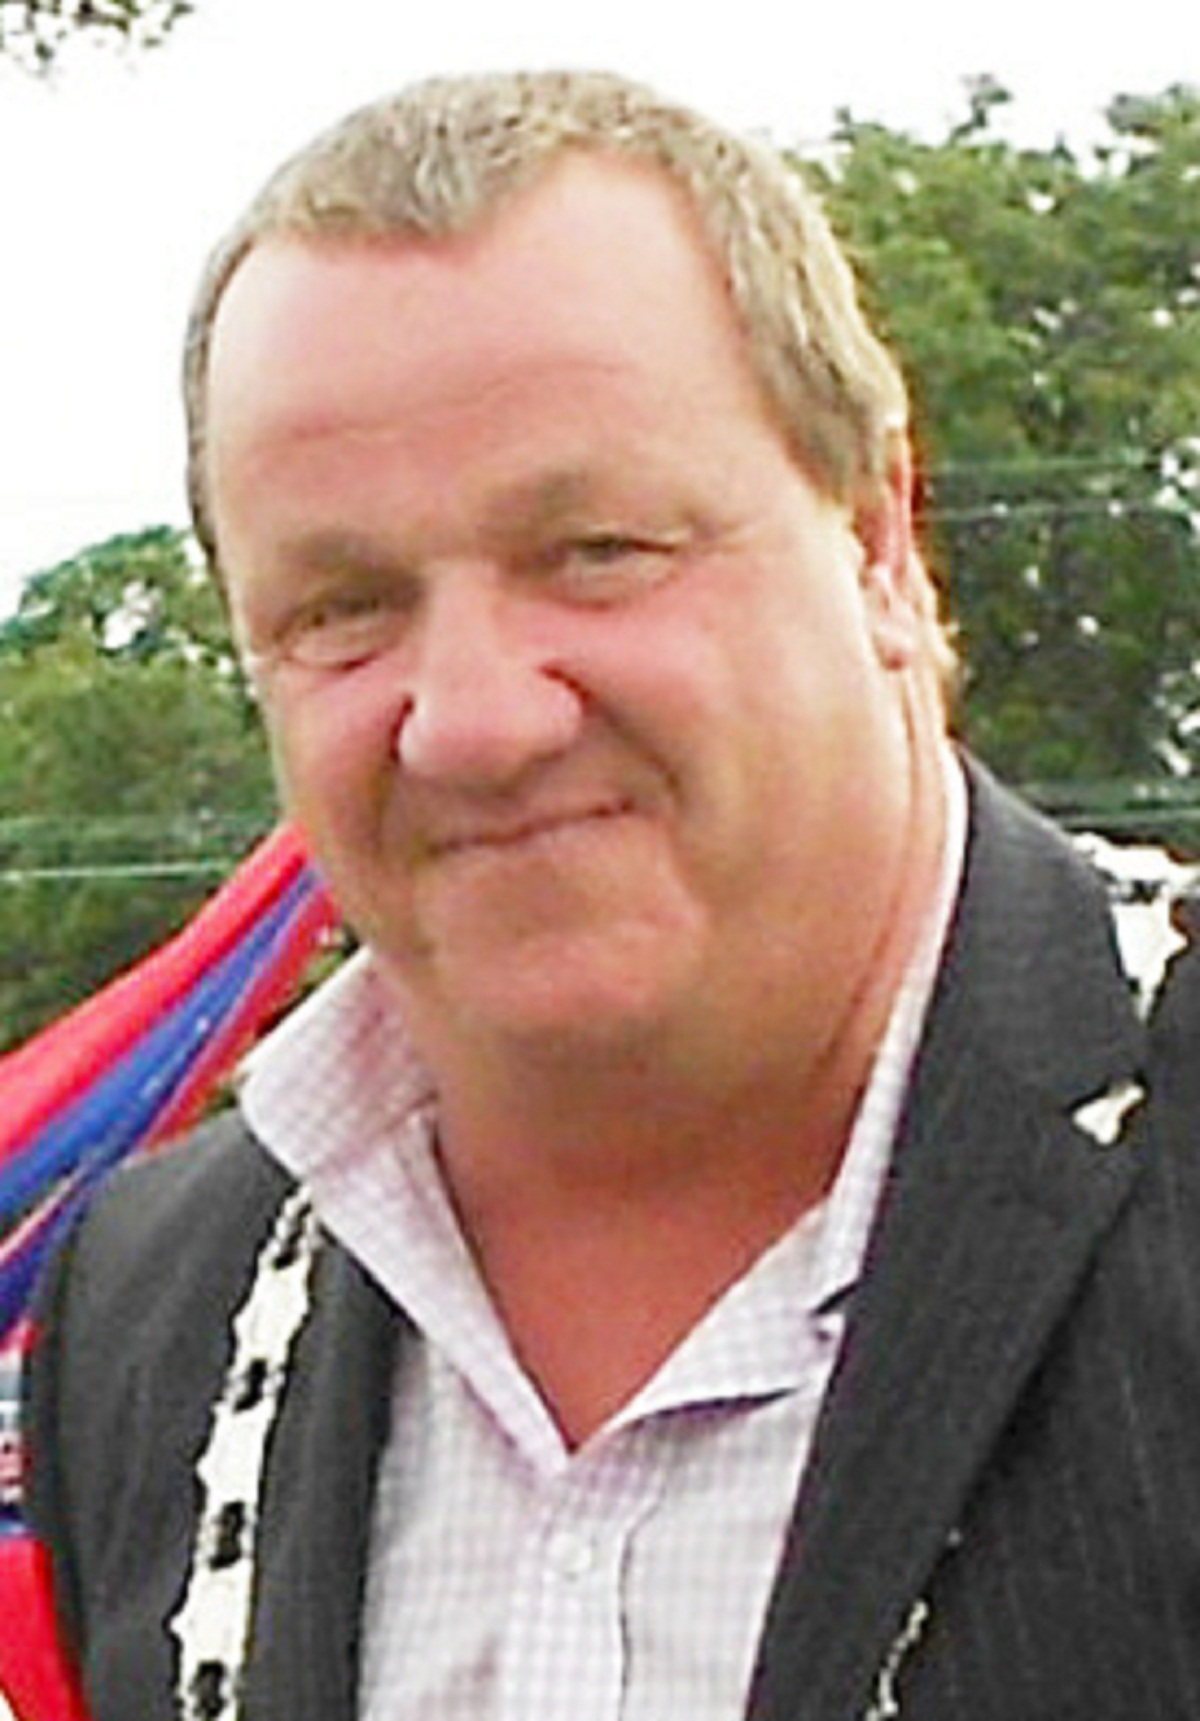 Silsden mayor Councillor Chris Atkinson